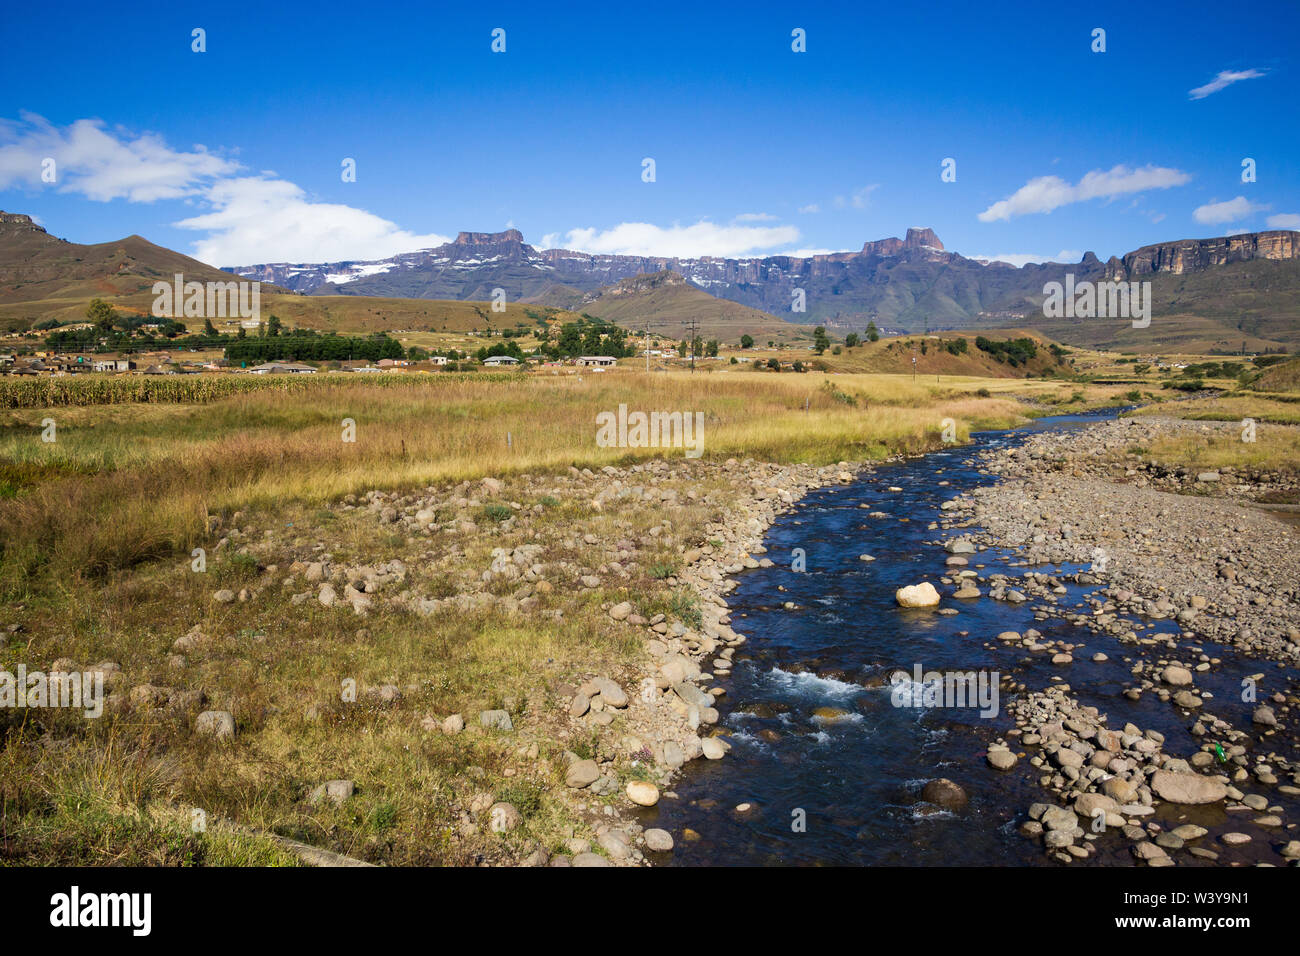 African landscape and scenic panoramic view onto the Drakensberg mountains and snow covered Amphitheatre region Kwazulu Natal, South Africa in Winter Stock Photo